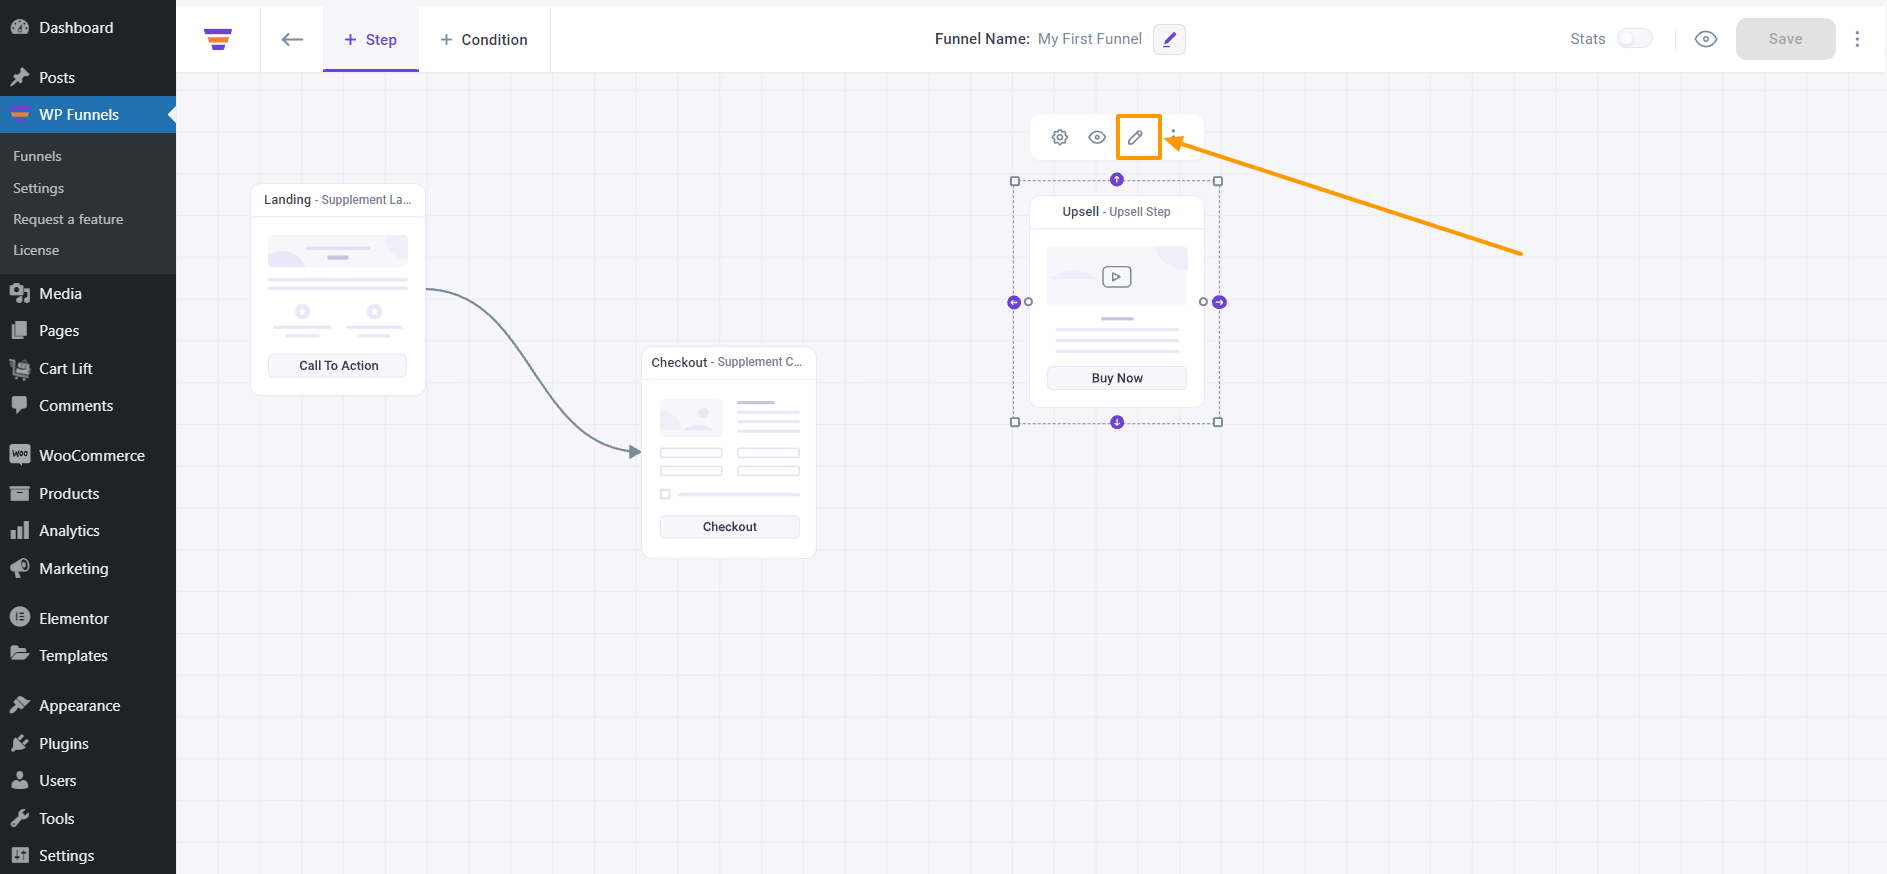 WP Funnels Upsell Page Edit With Elementor - Edit Button